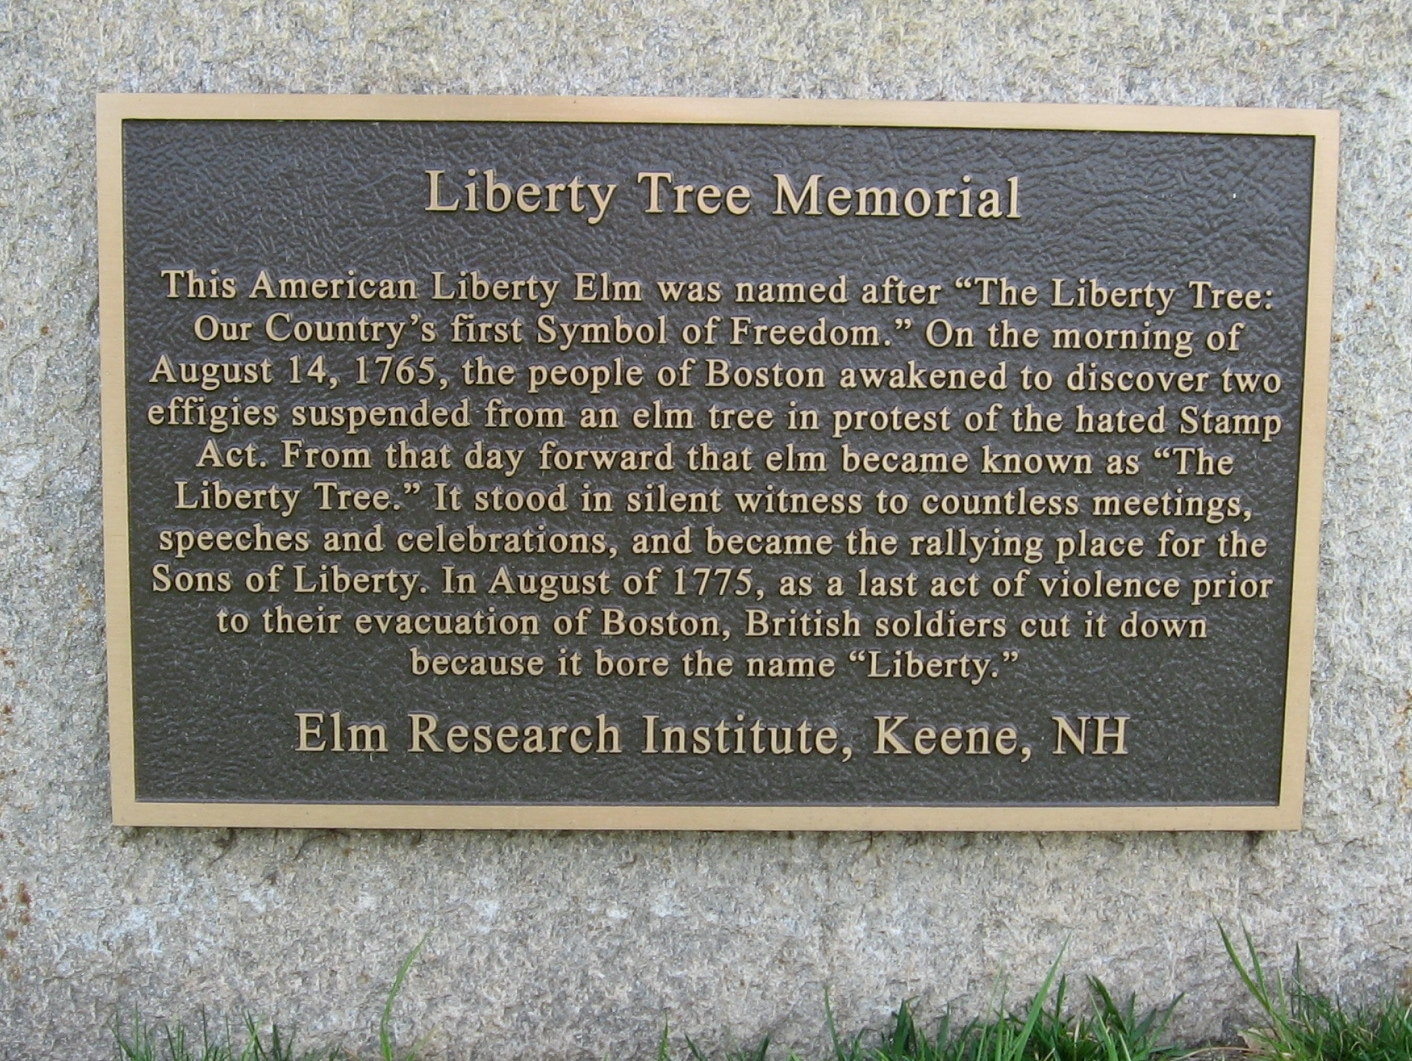 One of several plaques that denote the location of the Liberty Tree